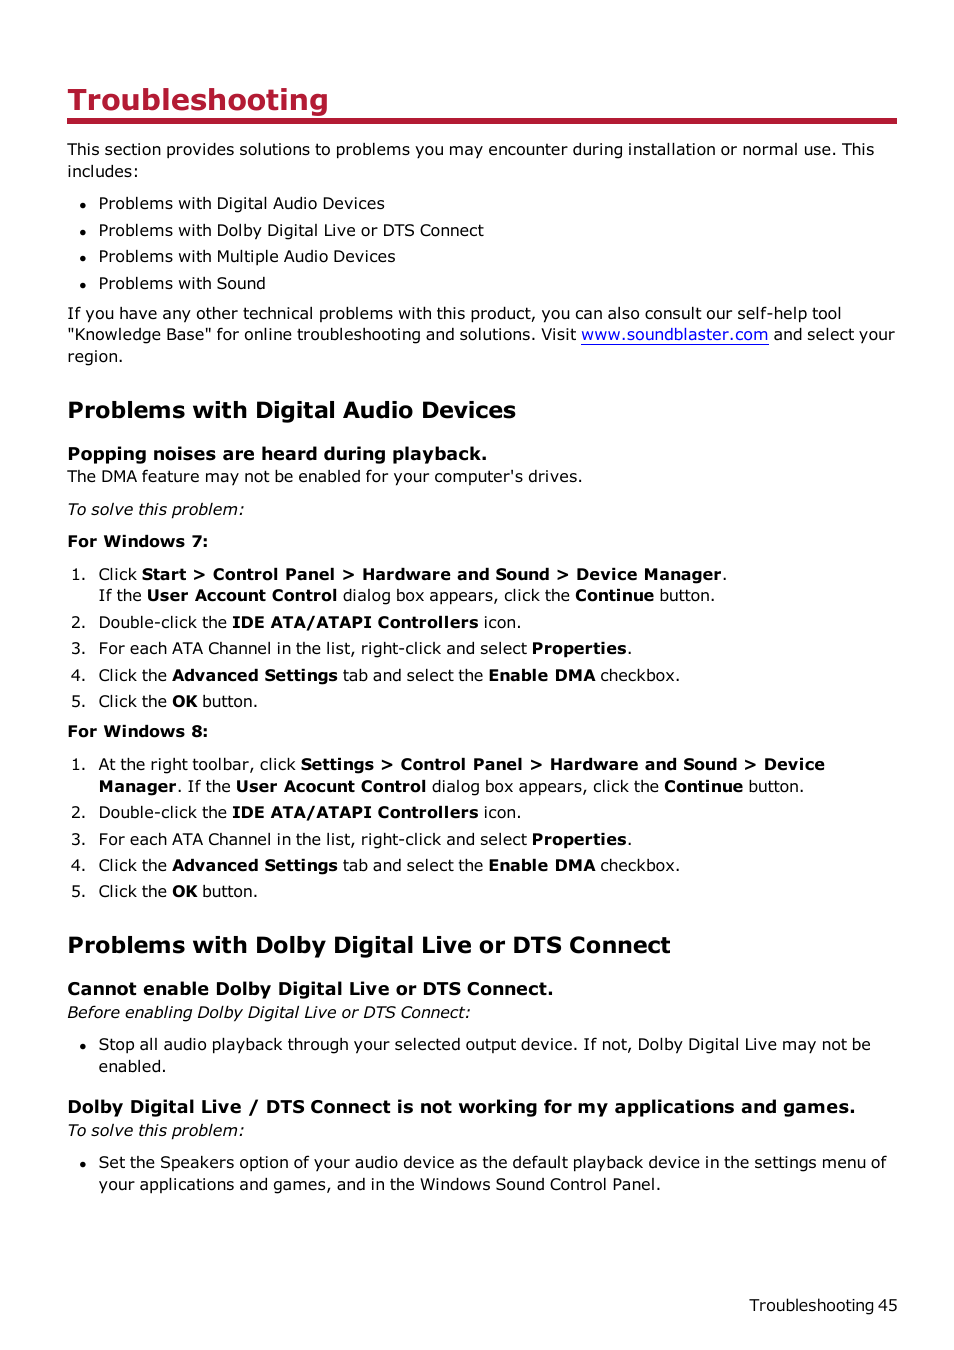 Troubleshooting, Problems with digital audio devices